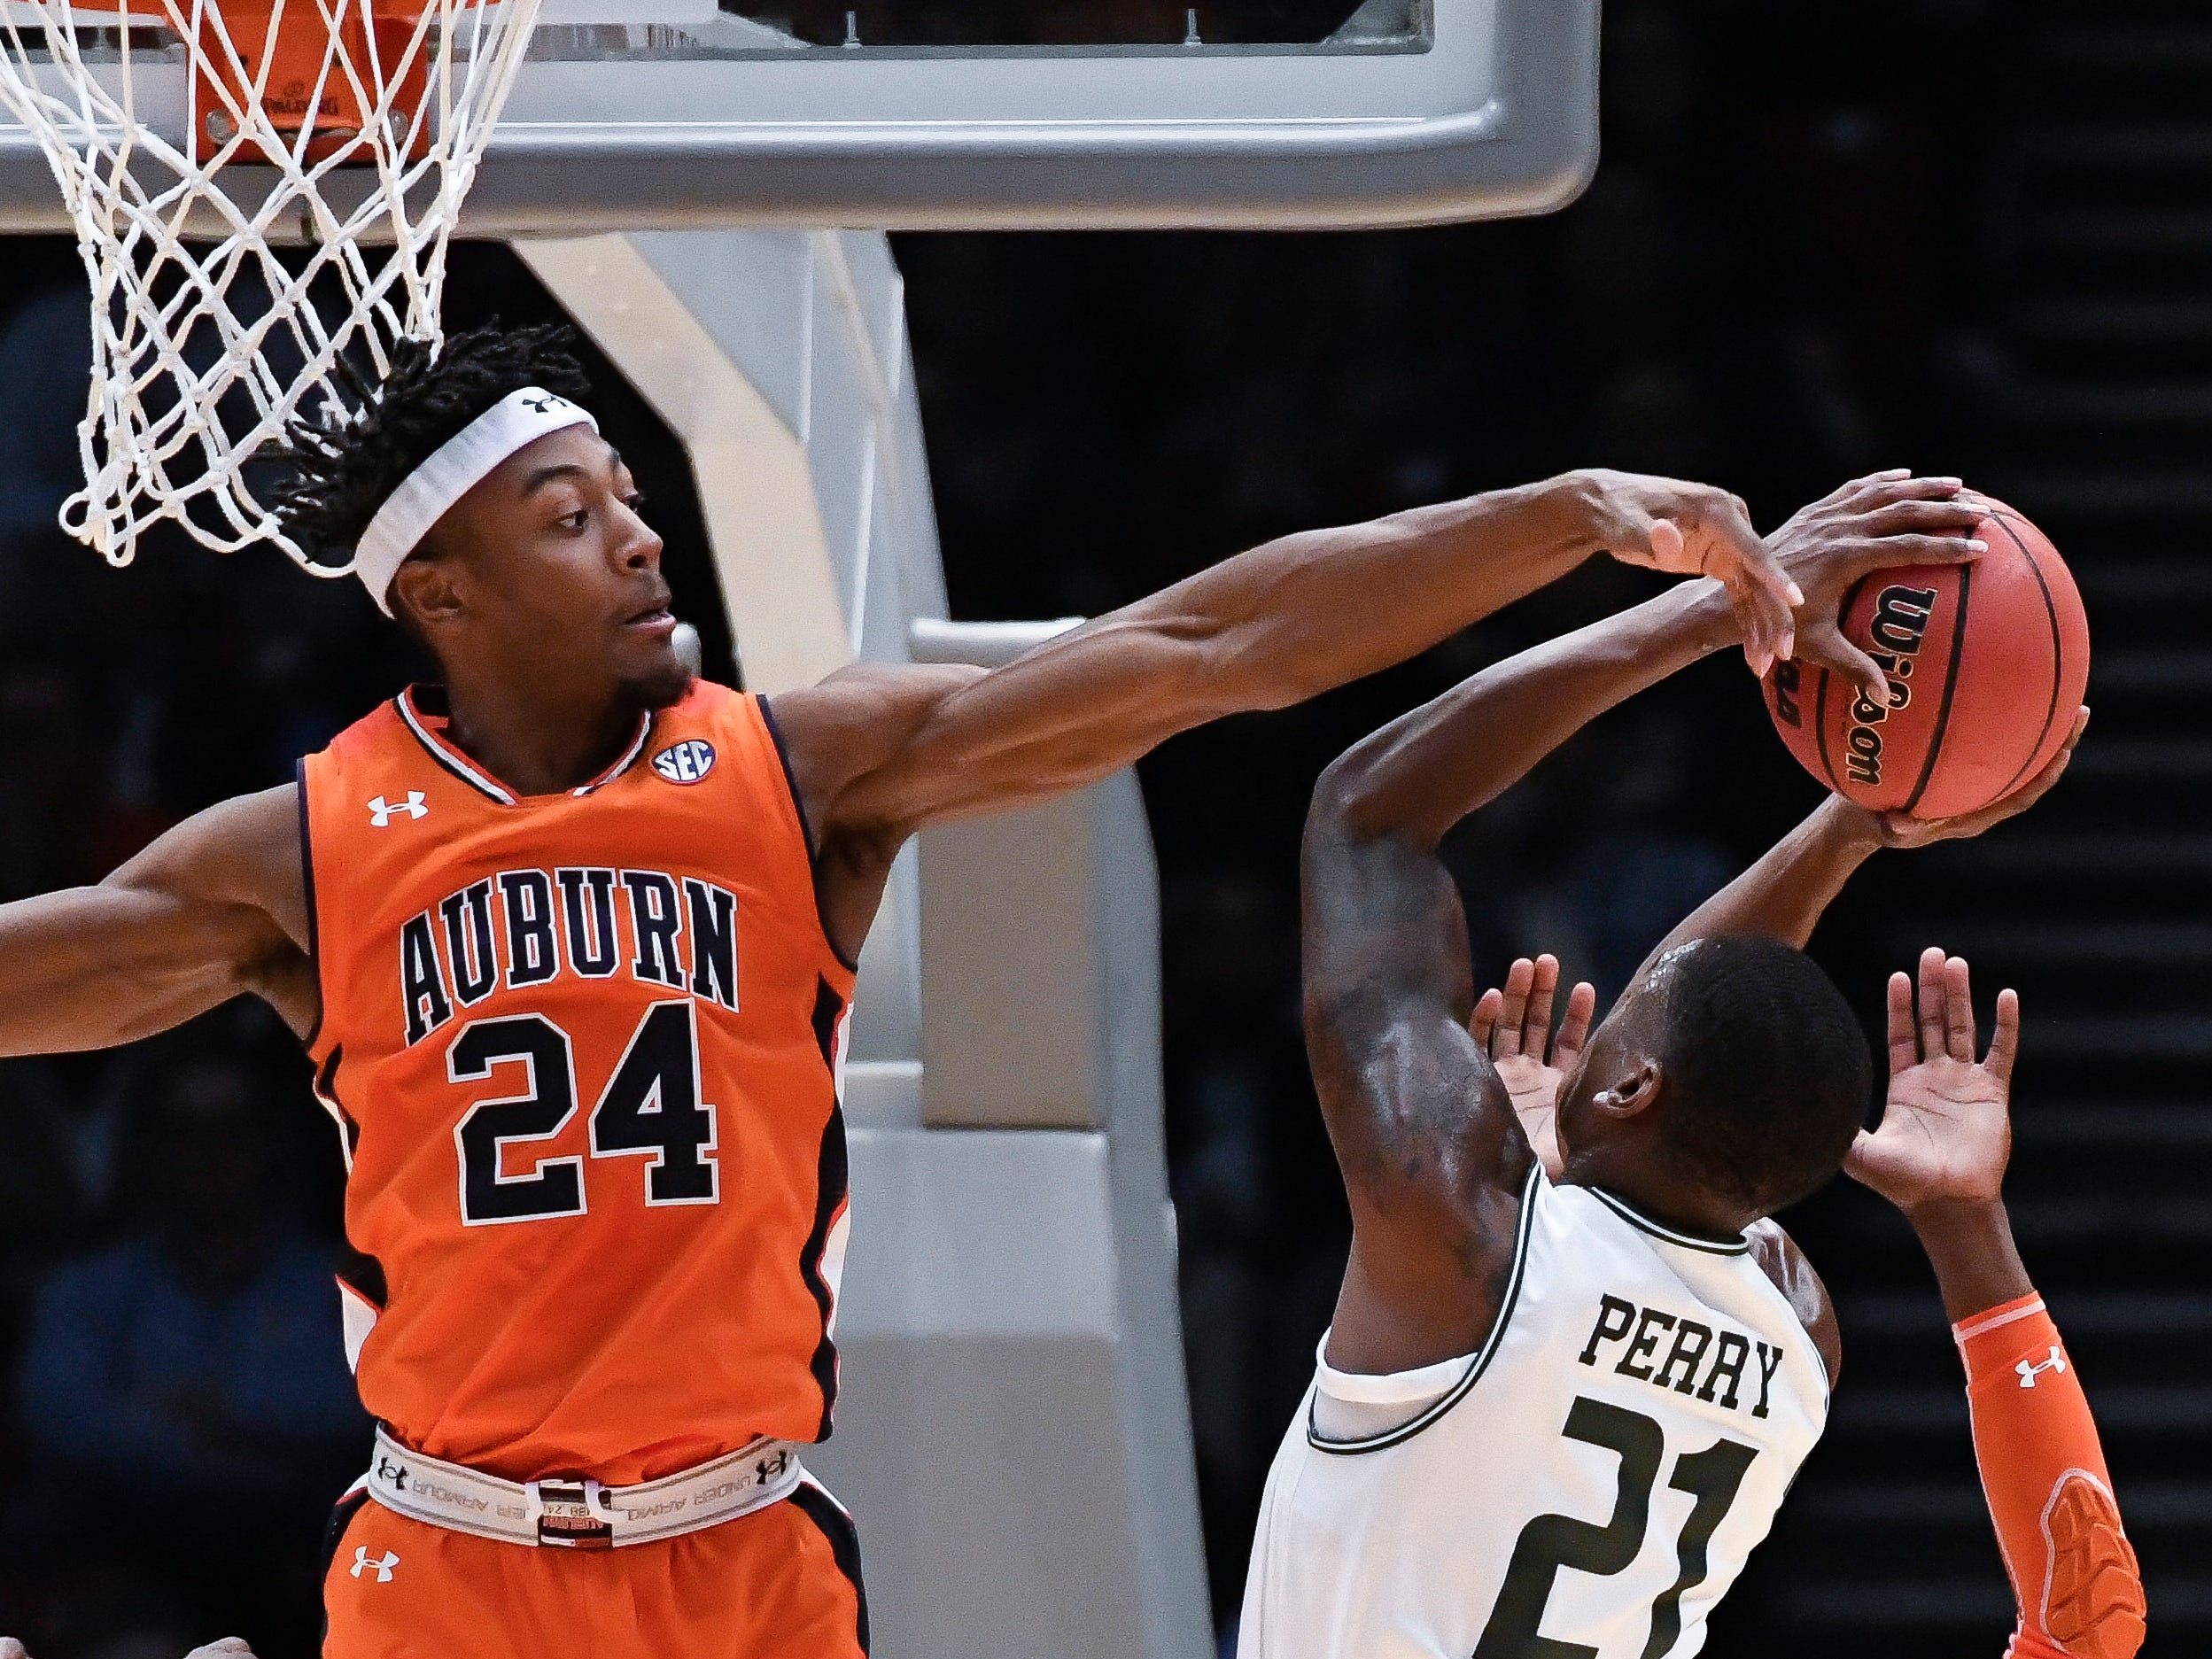 Auburn forward Anfernee McLemore (24) defends a shot by UAB guard Jalen Perry (21) on Saturday, Dec. 15, 2018, in Birmingham, Ala.